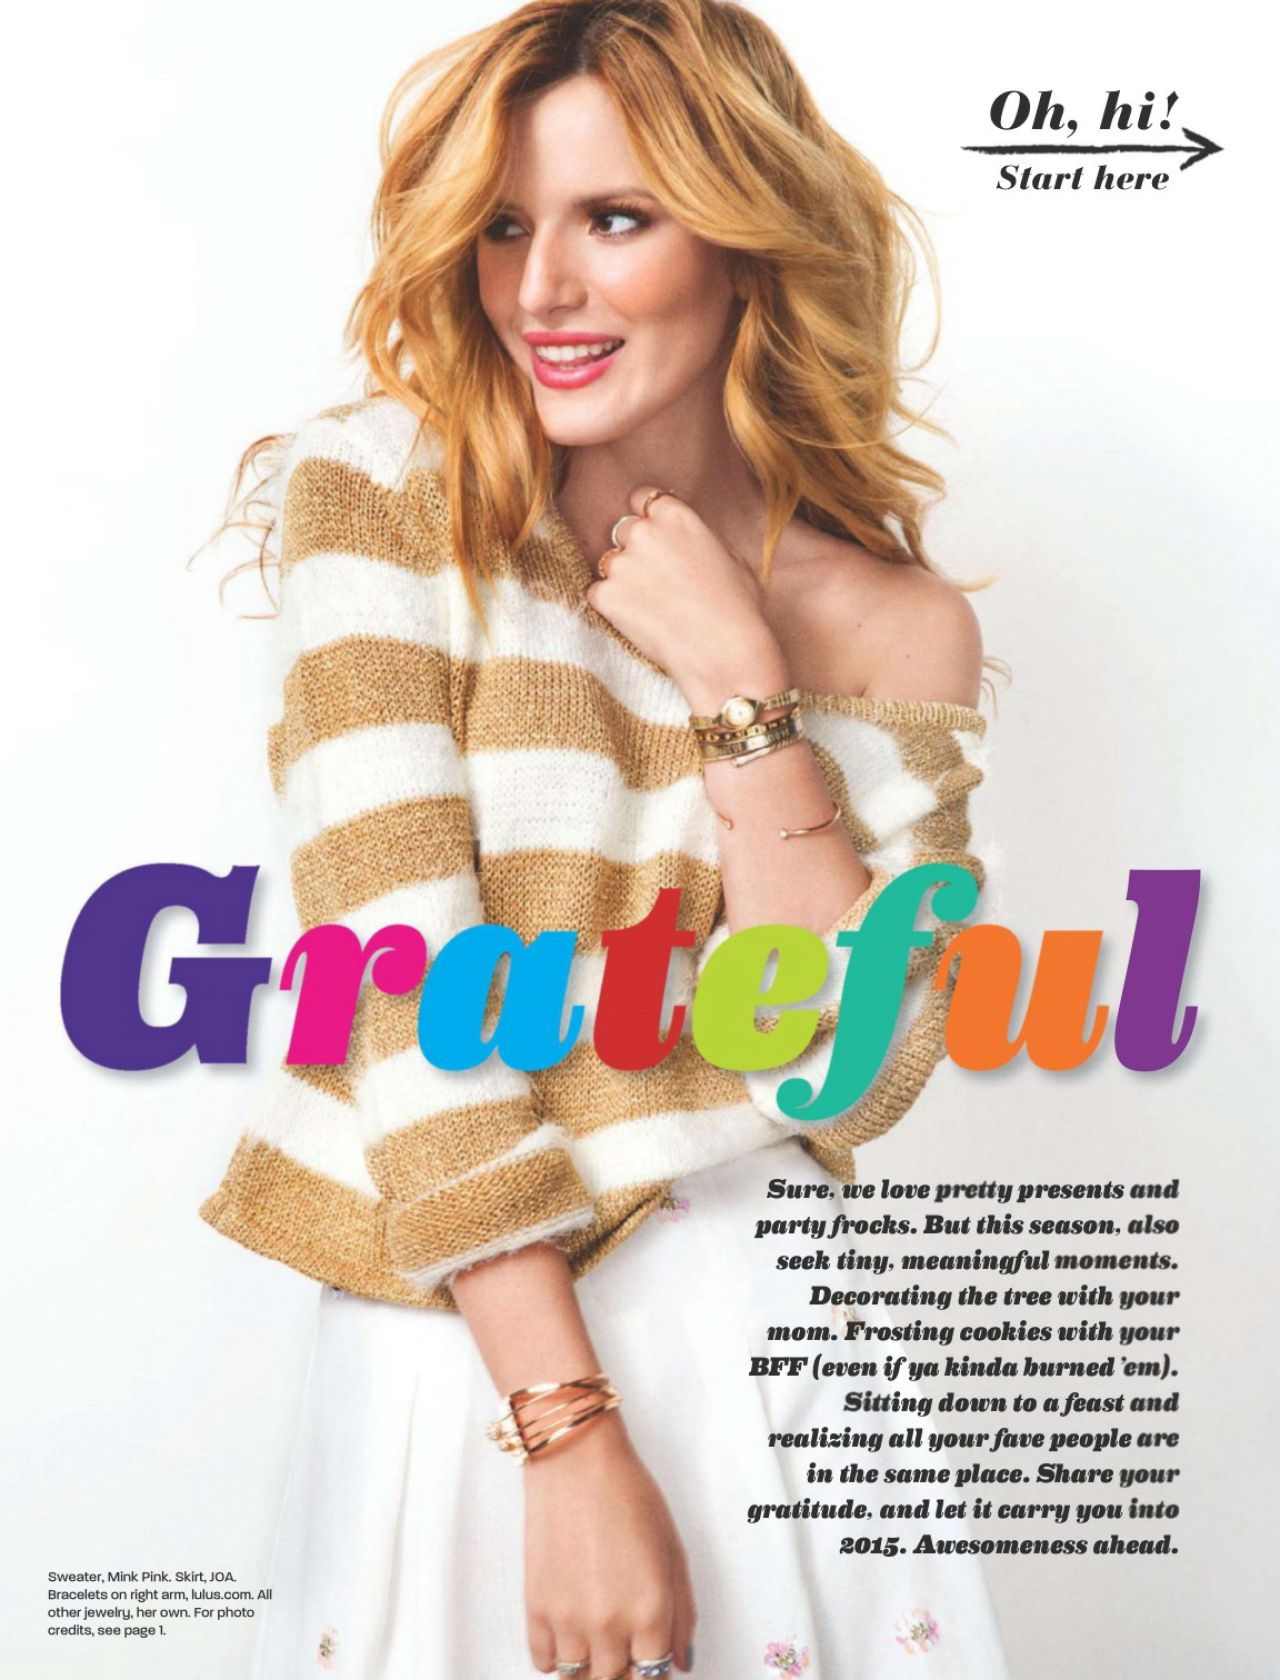 Bella thorne life information - Bella thorne girls life magazine december 2014 january 2015 issue